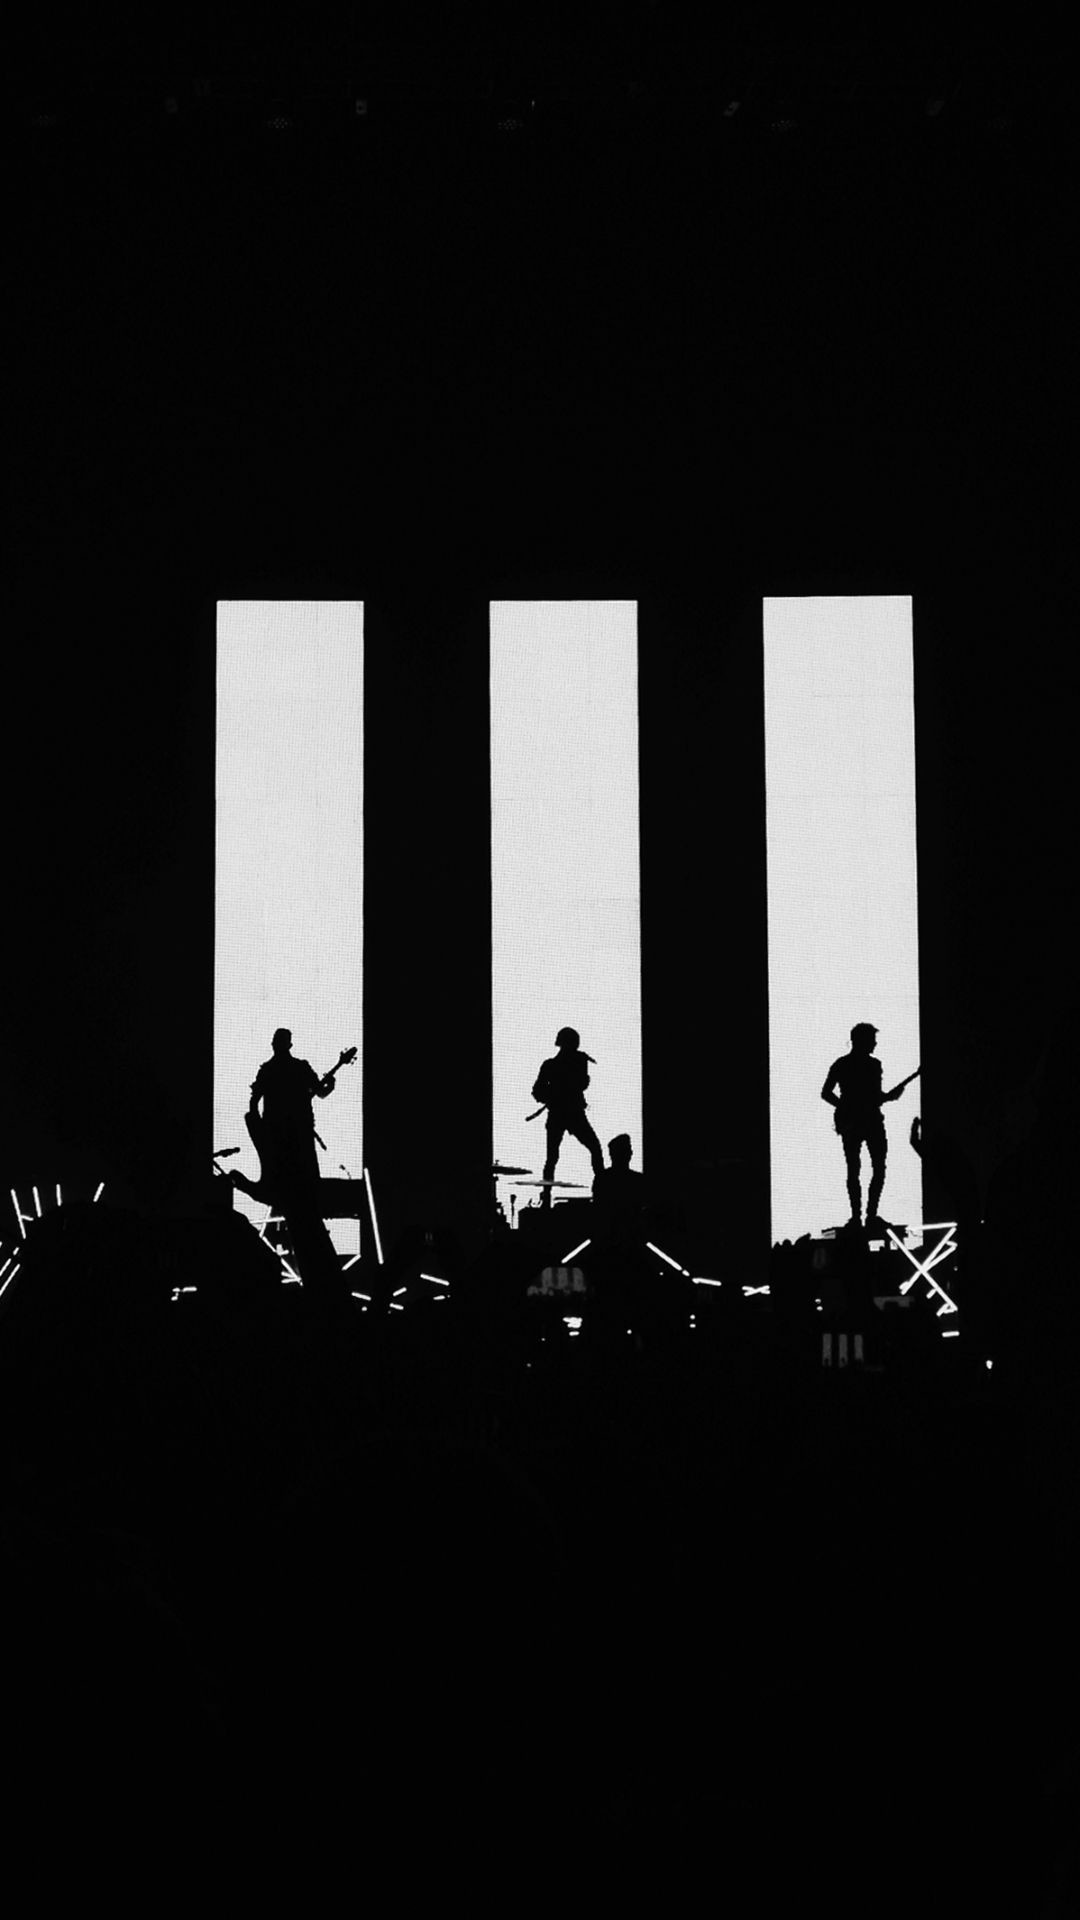 How To Make Live Wallpaper Work Iphone X Paramore Wallpapers 2018 183 ①